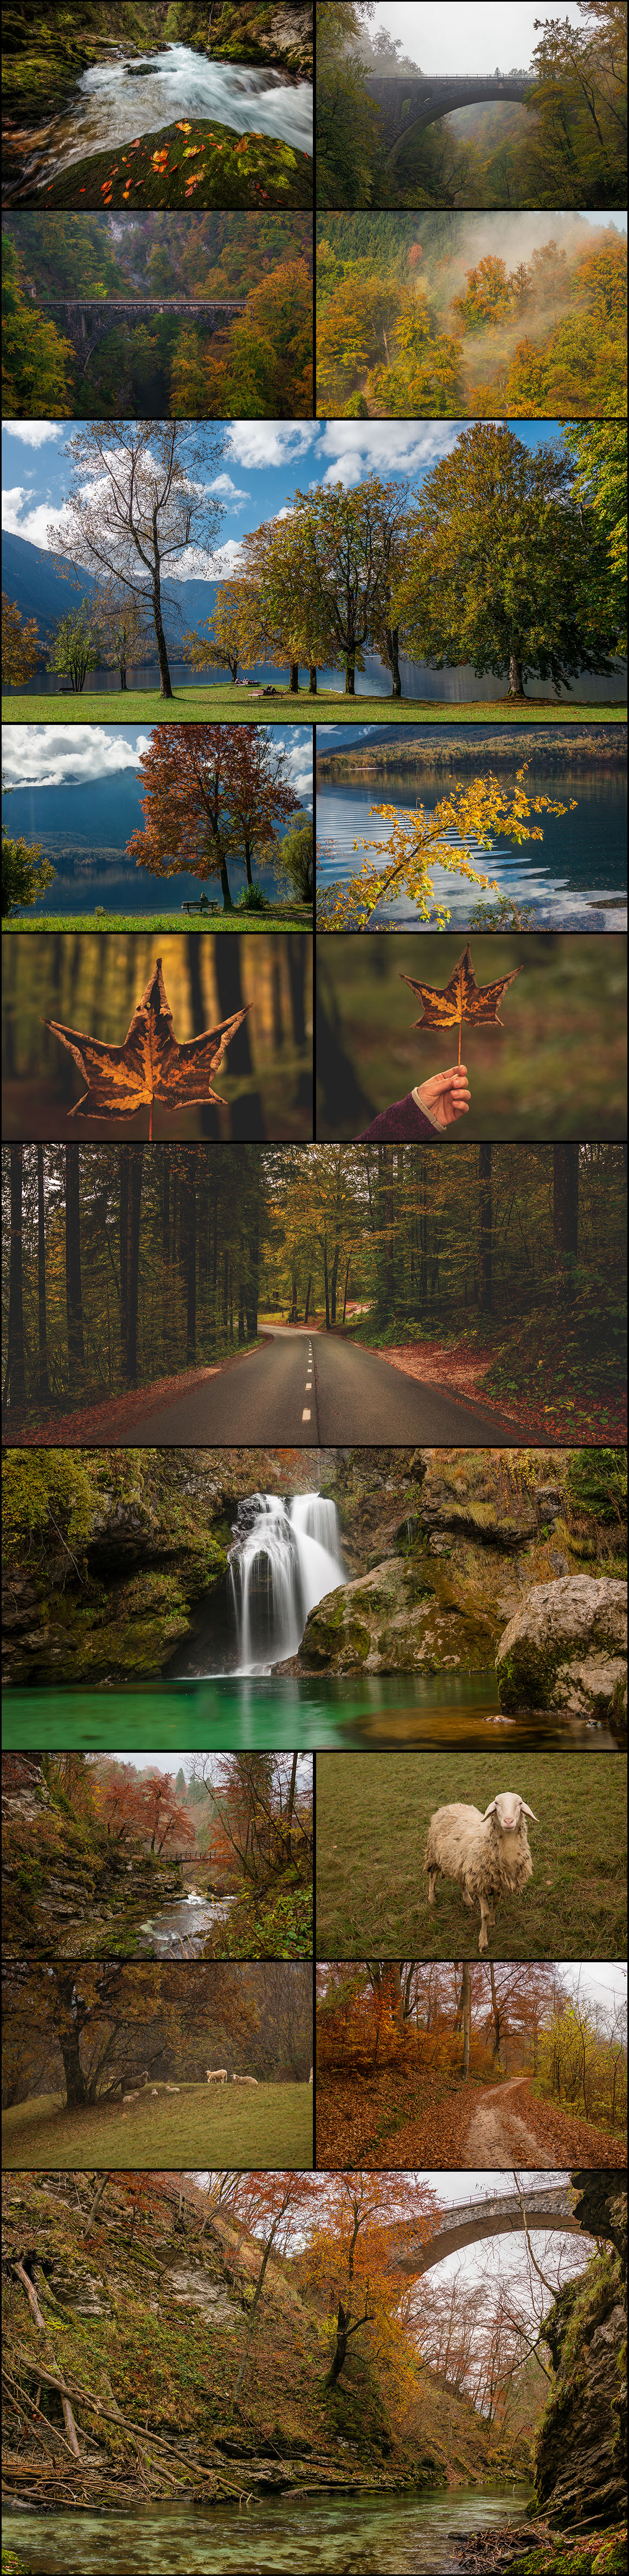 Ultimate Photo Bundle 2016 from DreamyPixel – 700+ Images example image 5